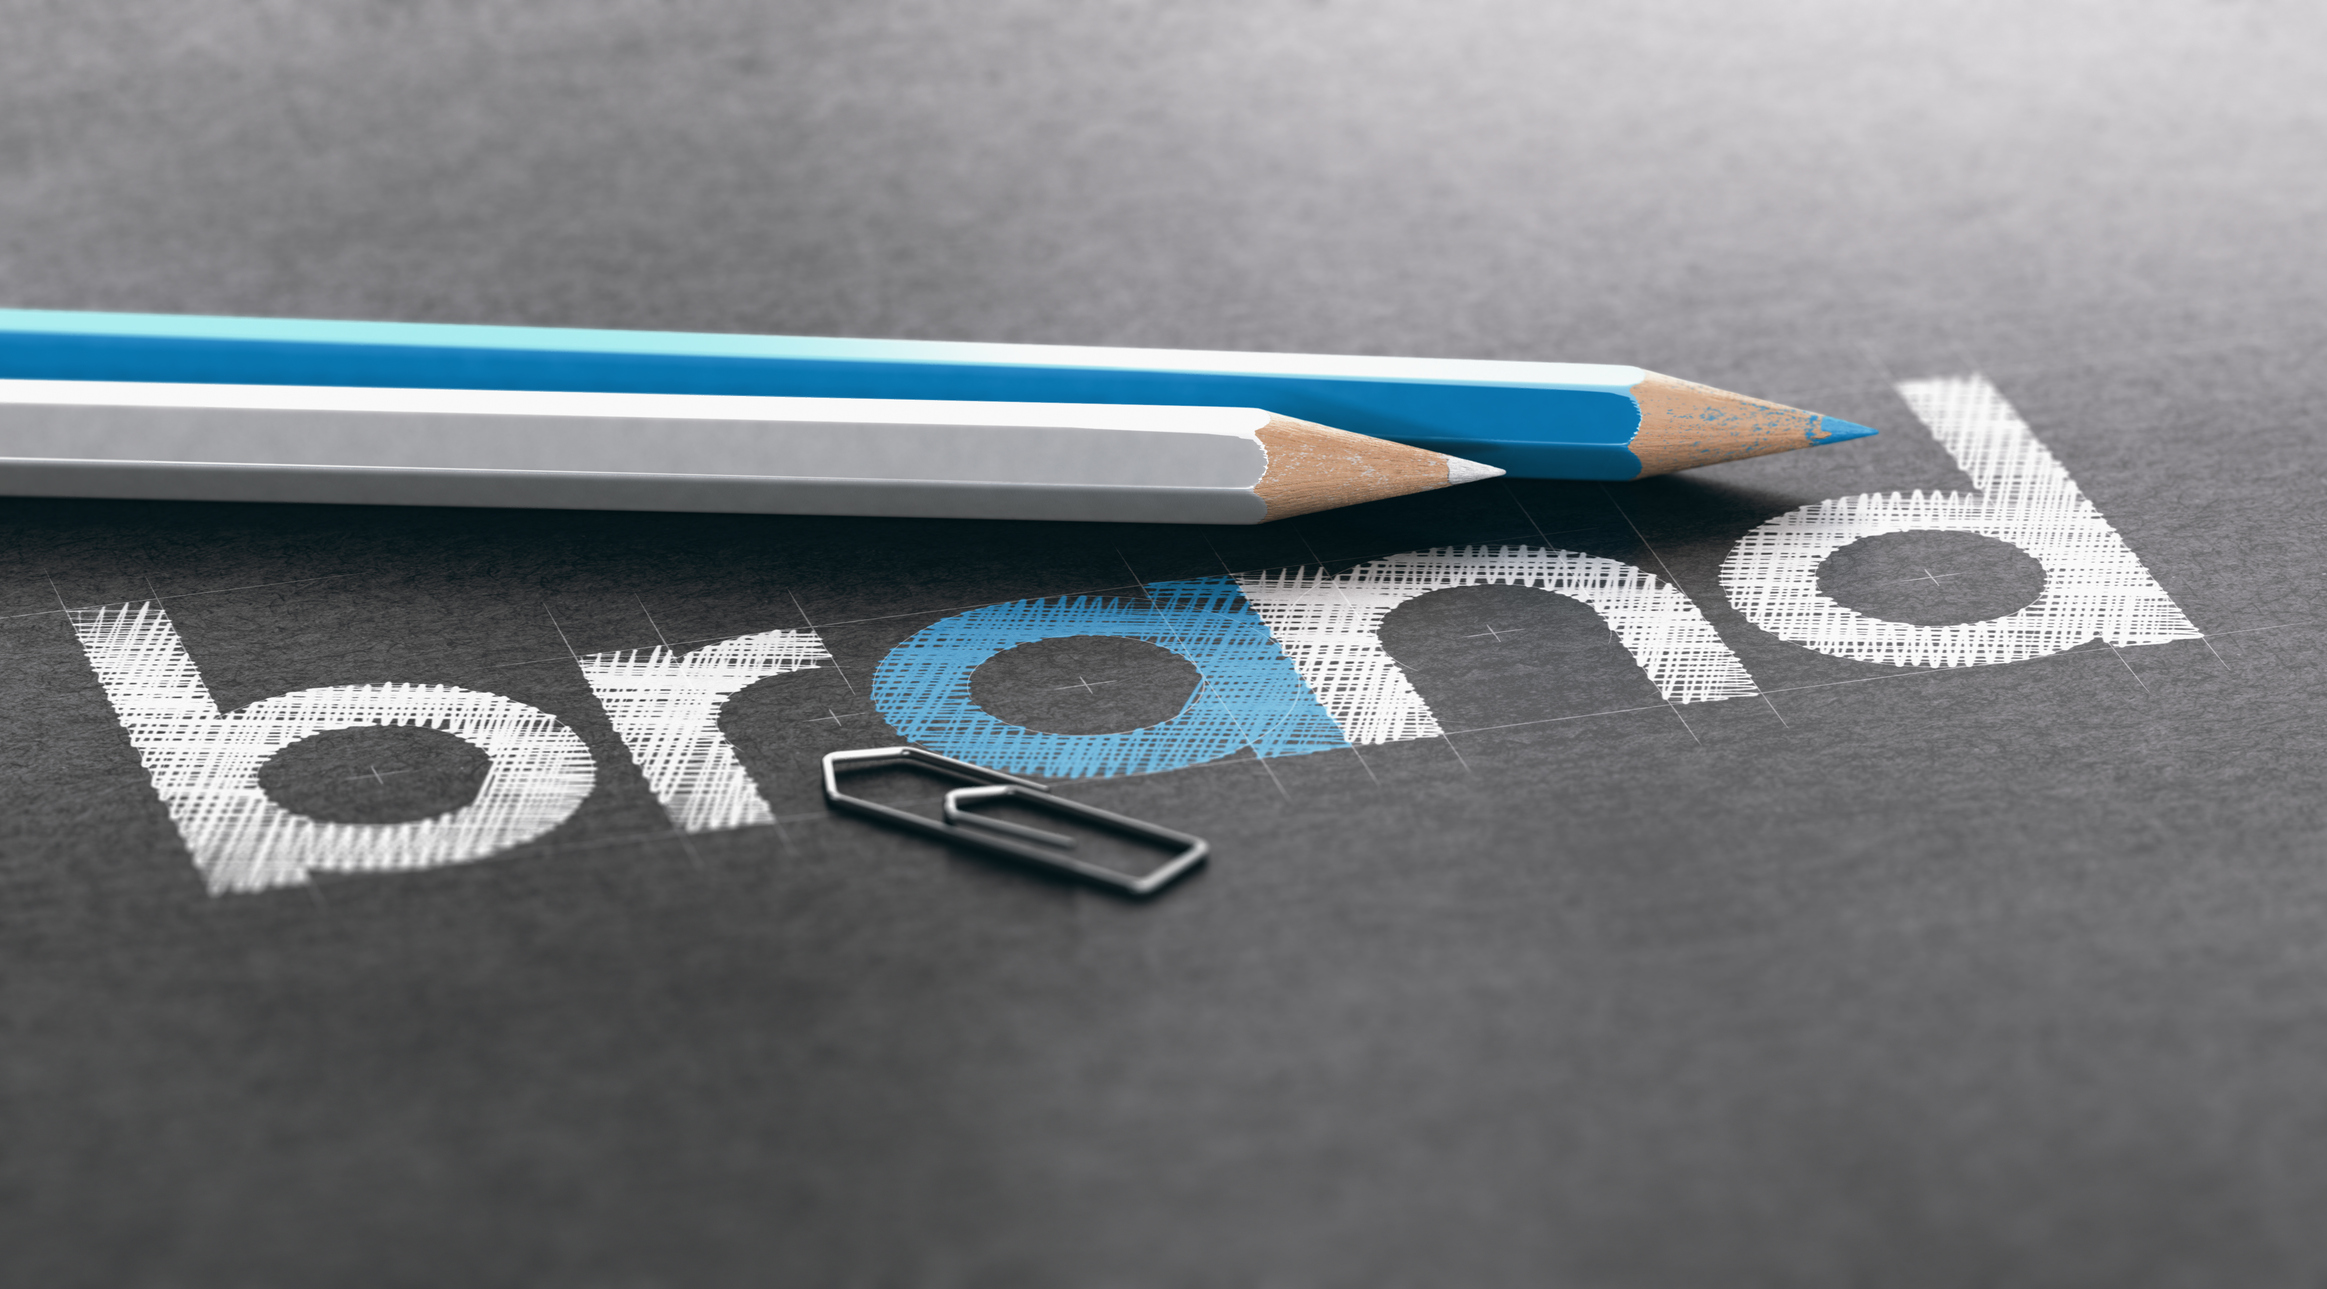 Brand name written over black paper background with white and blue wooden colored pencils. 3D illustration